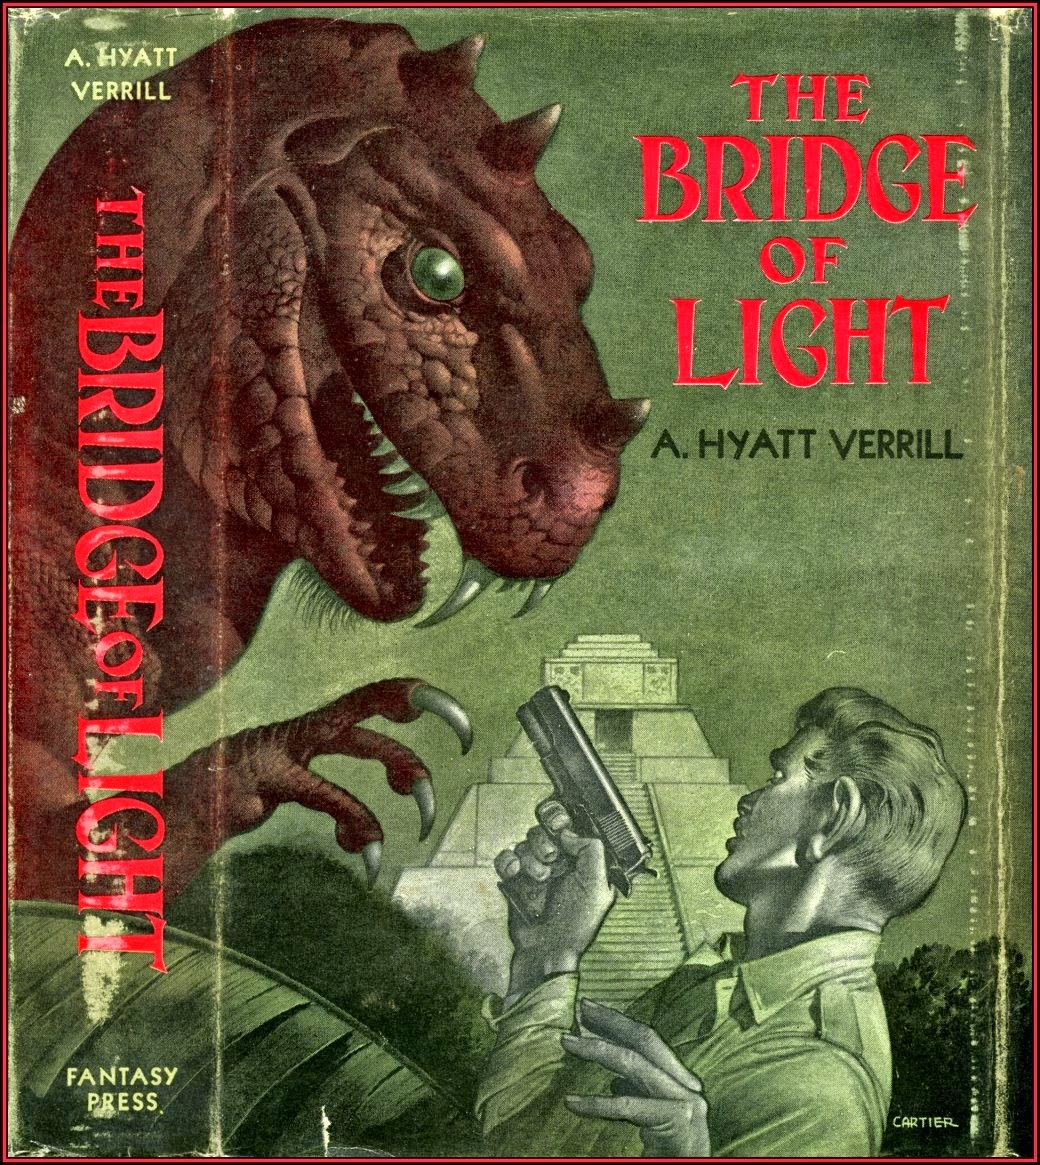 http://pulpcovers.com/the-bridge-of-light/